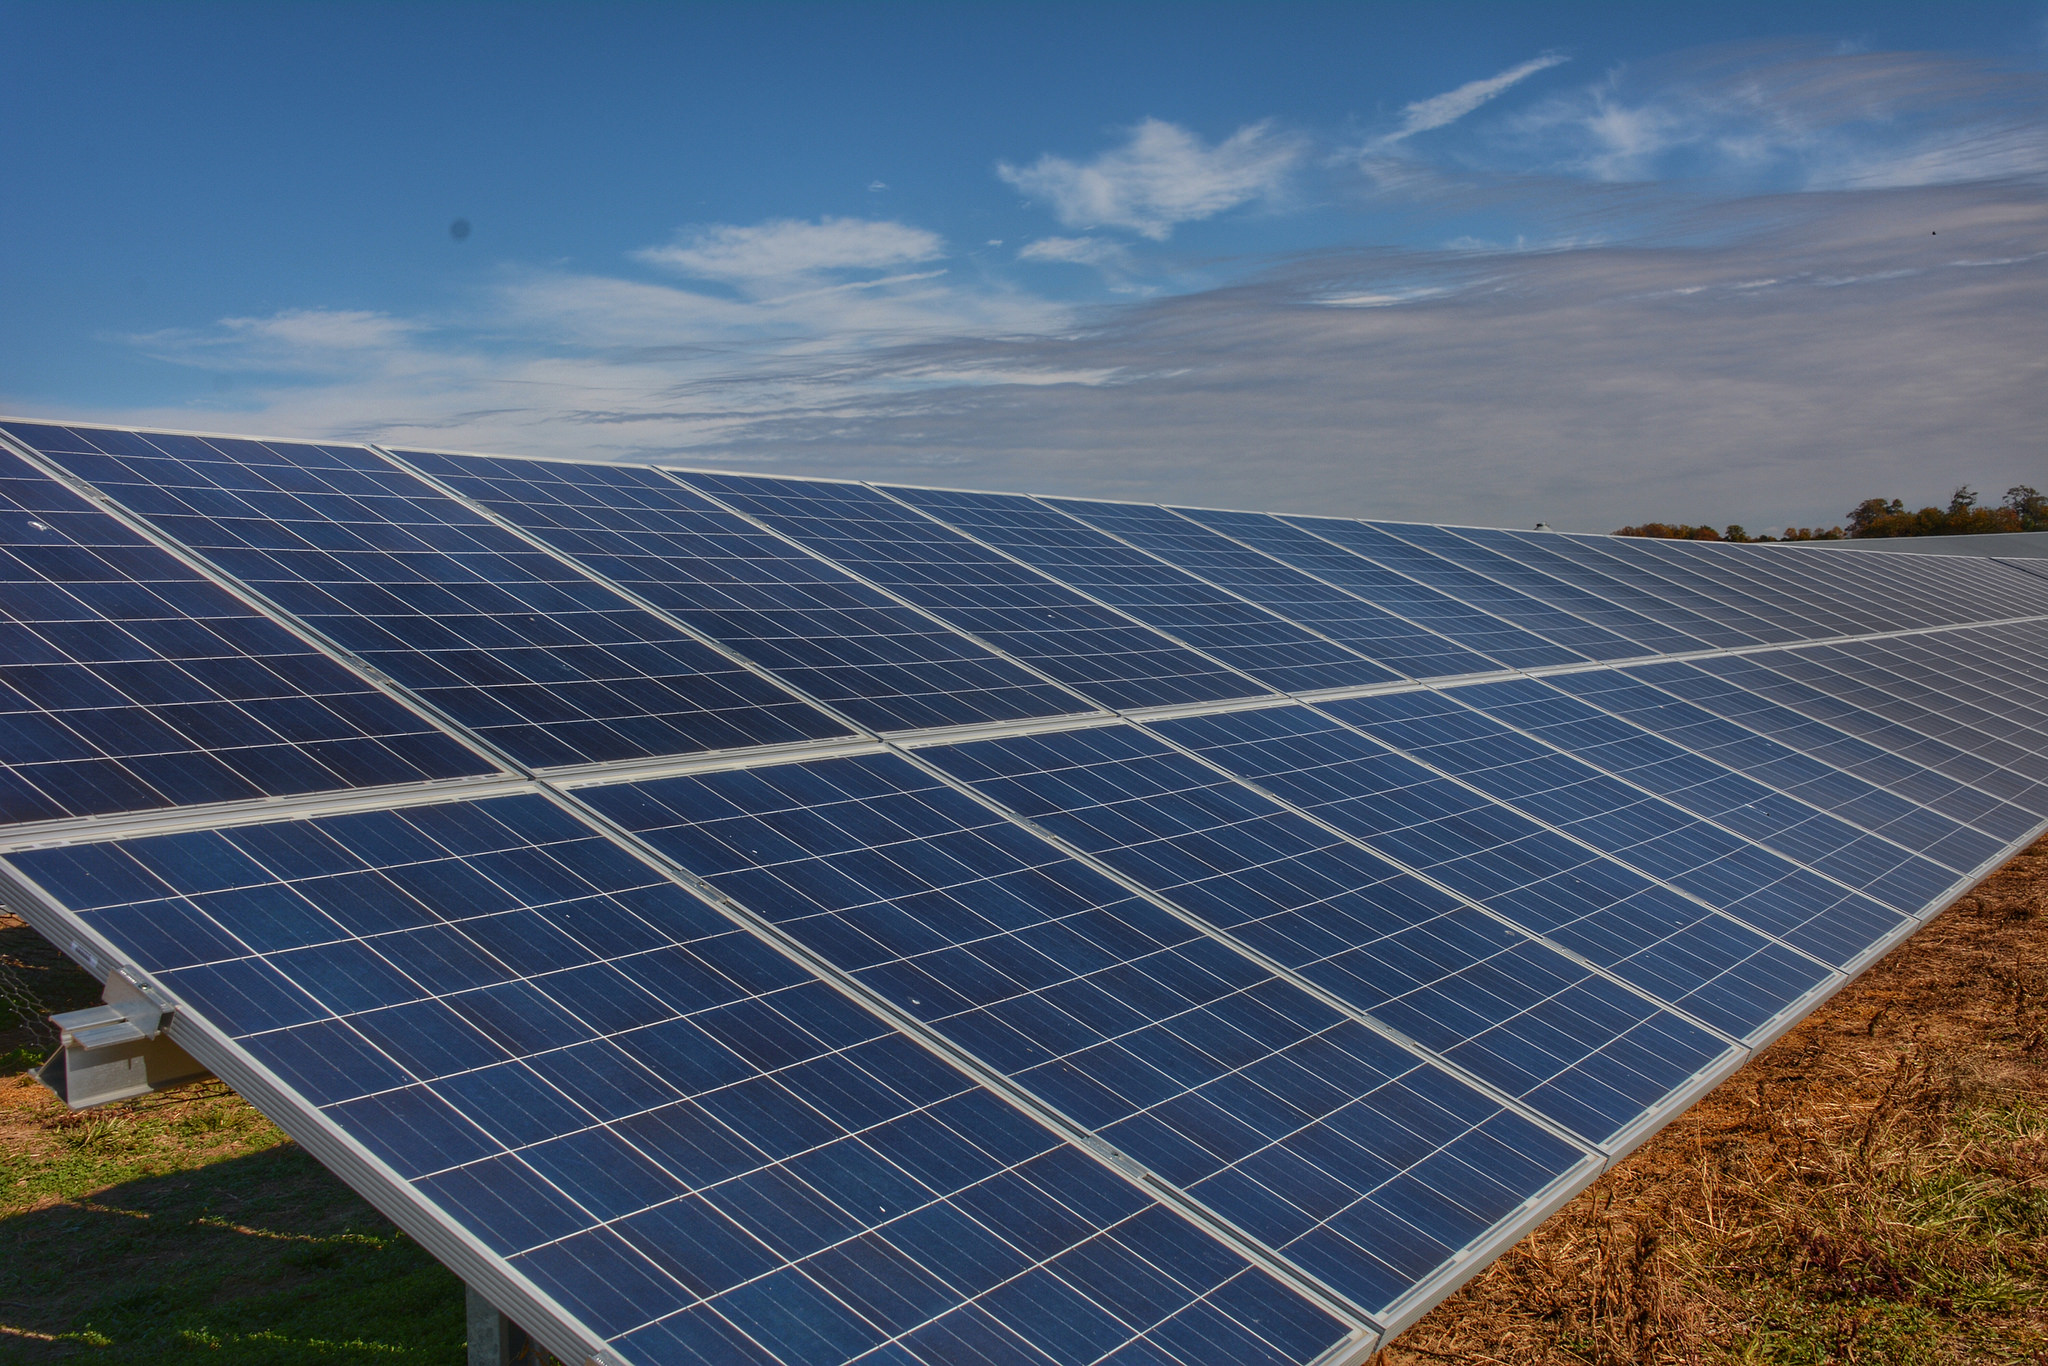 Once completed, the installation will feature more than 350,000 PV solar panels and will generate enough energy to power over 13,000 homes. Image: Deleware Cooperative / Flickr